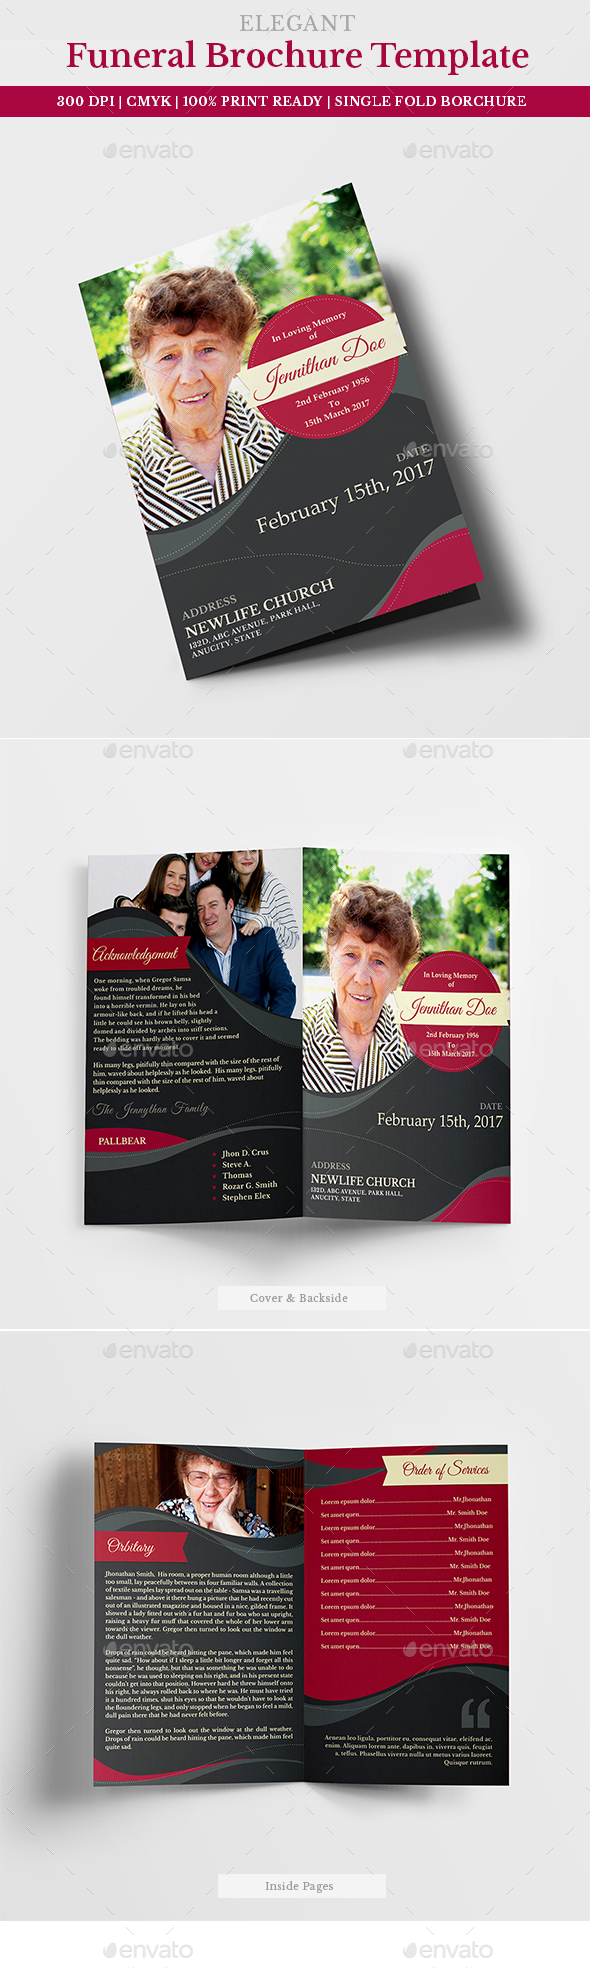 Funeral Program Brochure Template 05 - Miscellaneous Print Templates